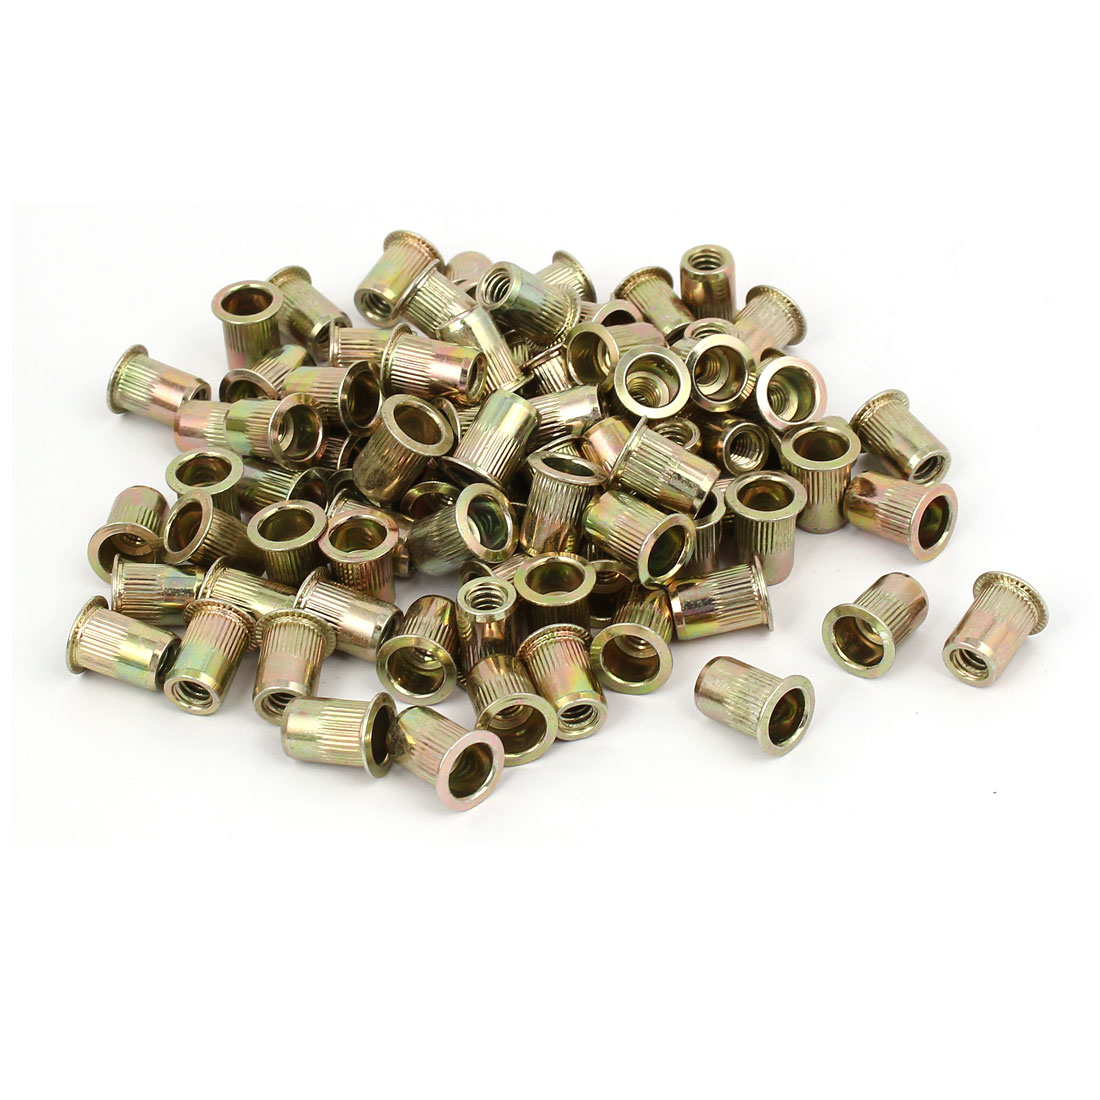 "1/4""x9.8mmx15mm Straight Knurled Umbrella Head Rivet Nut Insert Nutserts 100 Pcs"